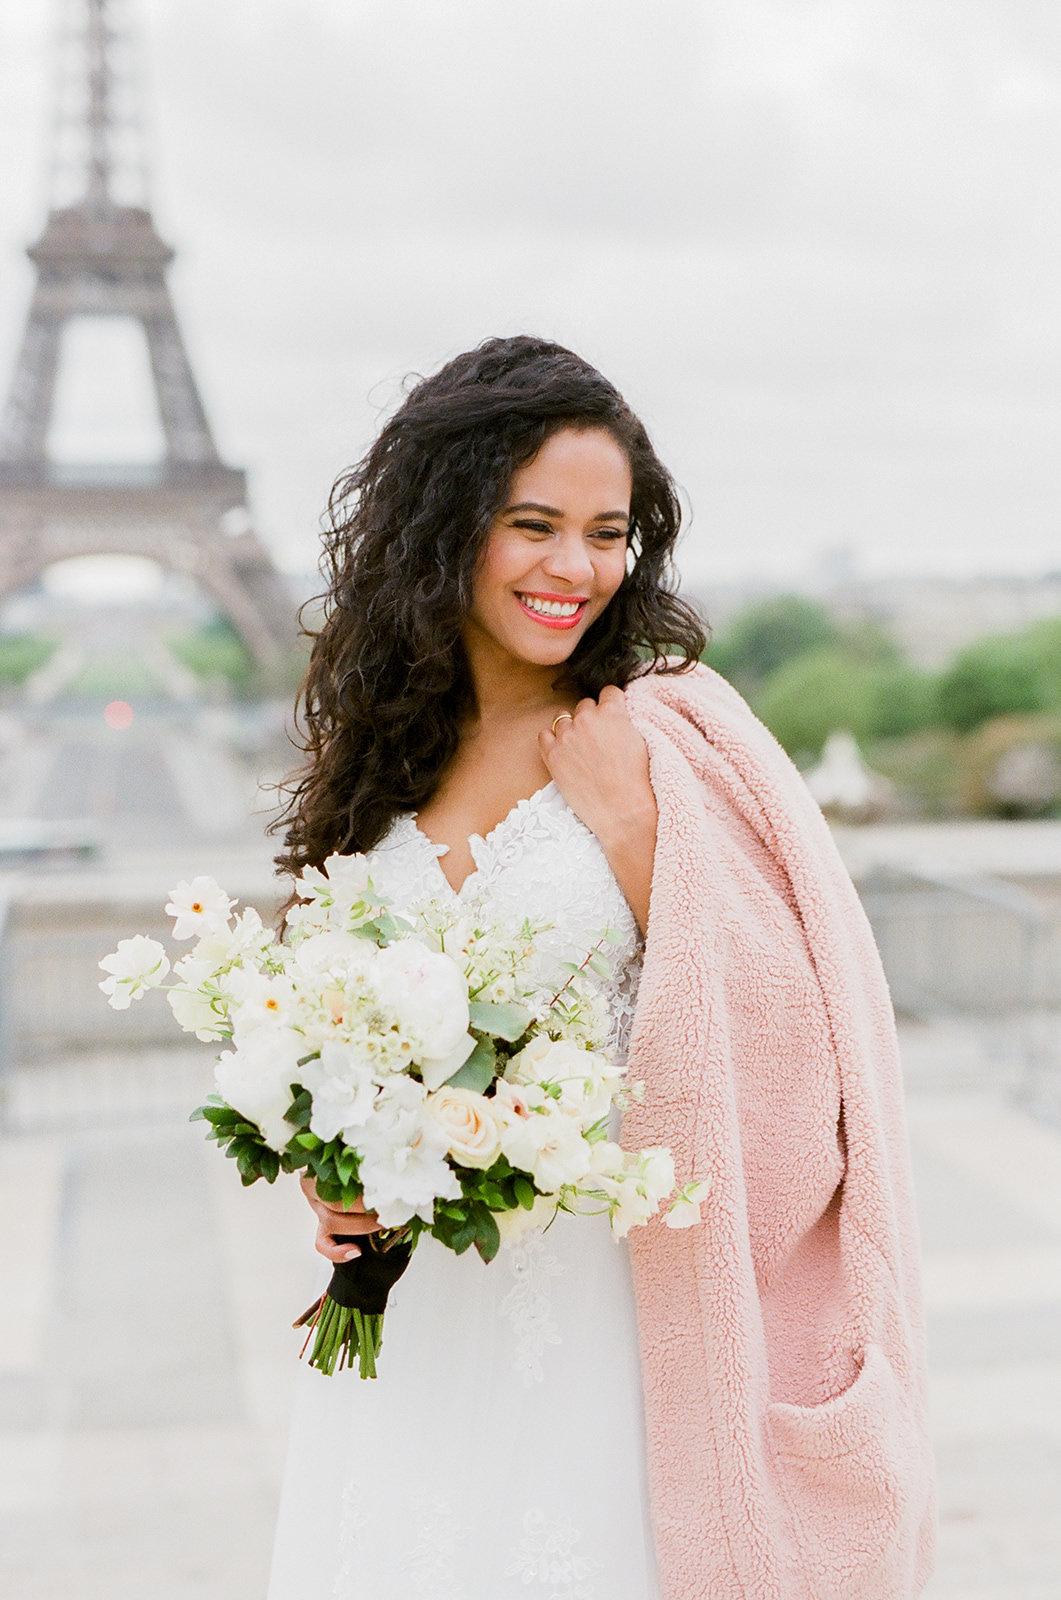 Laure_Lalliard_Design_Trocadero_Janine_Licare_Photography-14